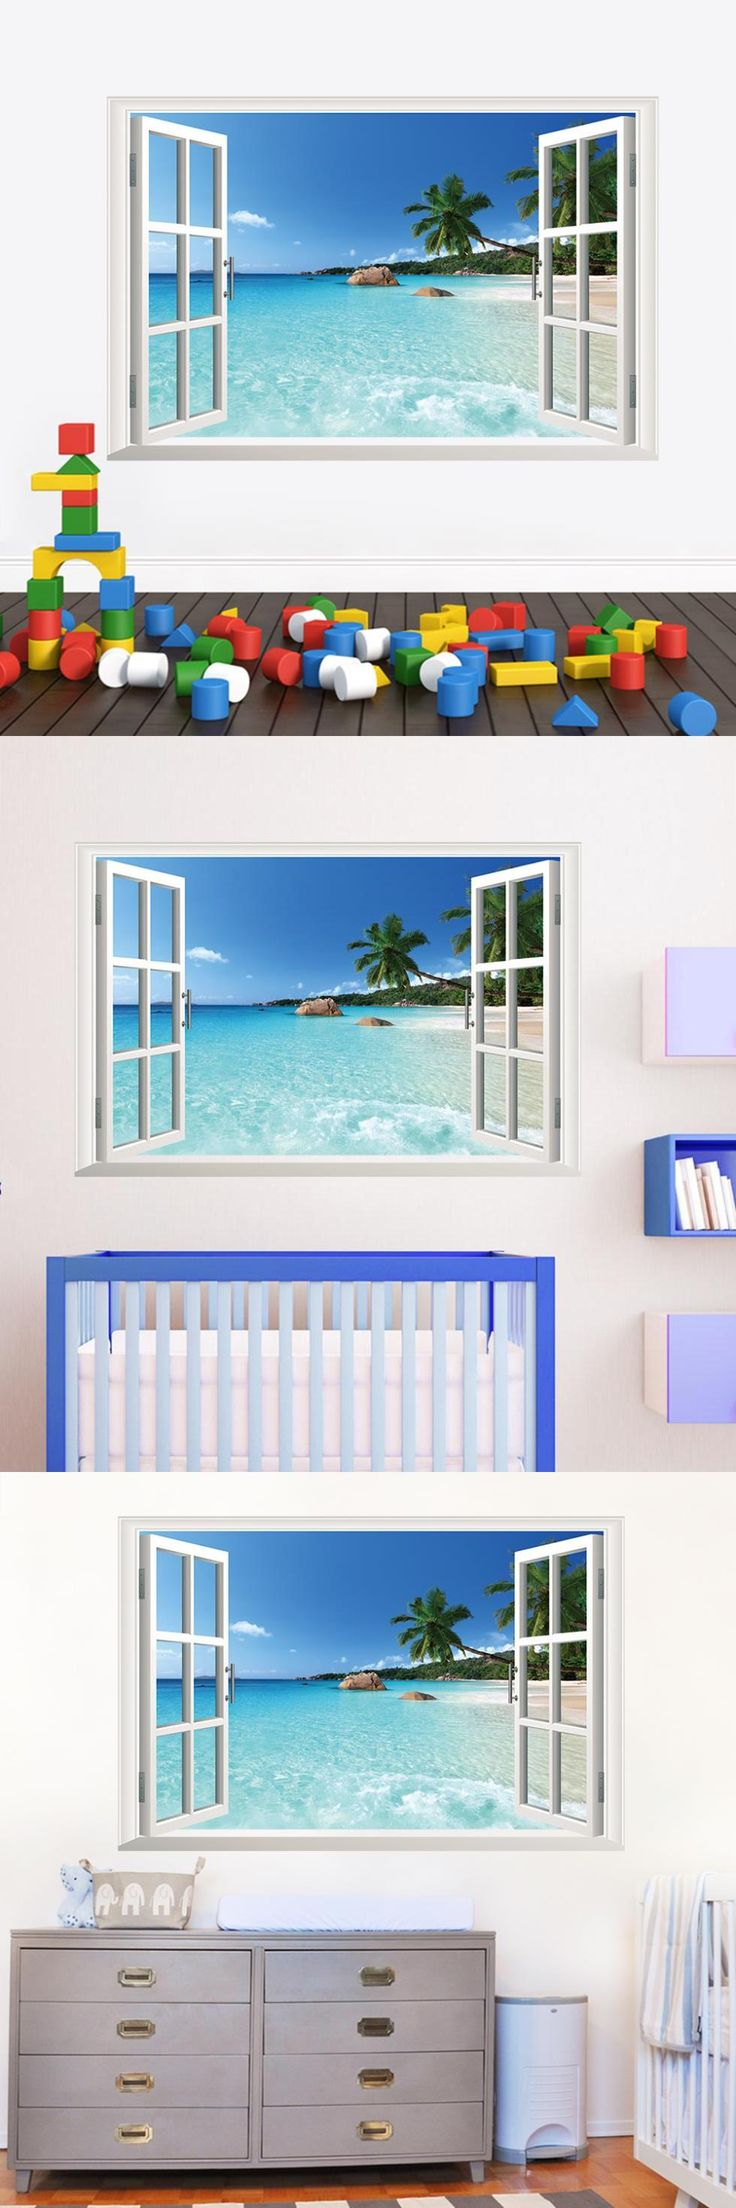 [Visit to Buy] ZY1430 Beach Resort  3D Window View Removable Wall Art Sticker Vinyl Decal  Mural home decoration #Advertisement